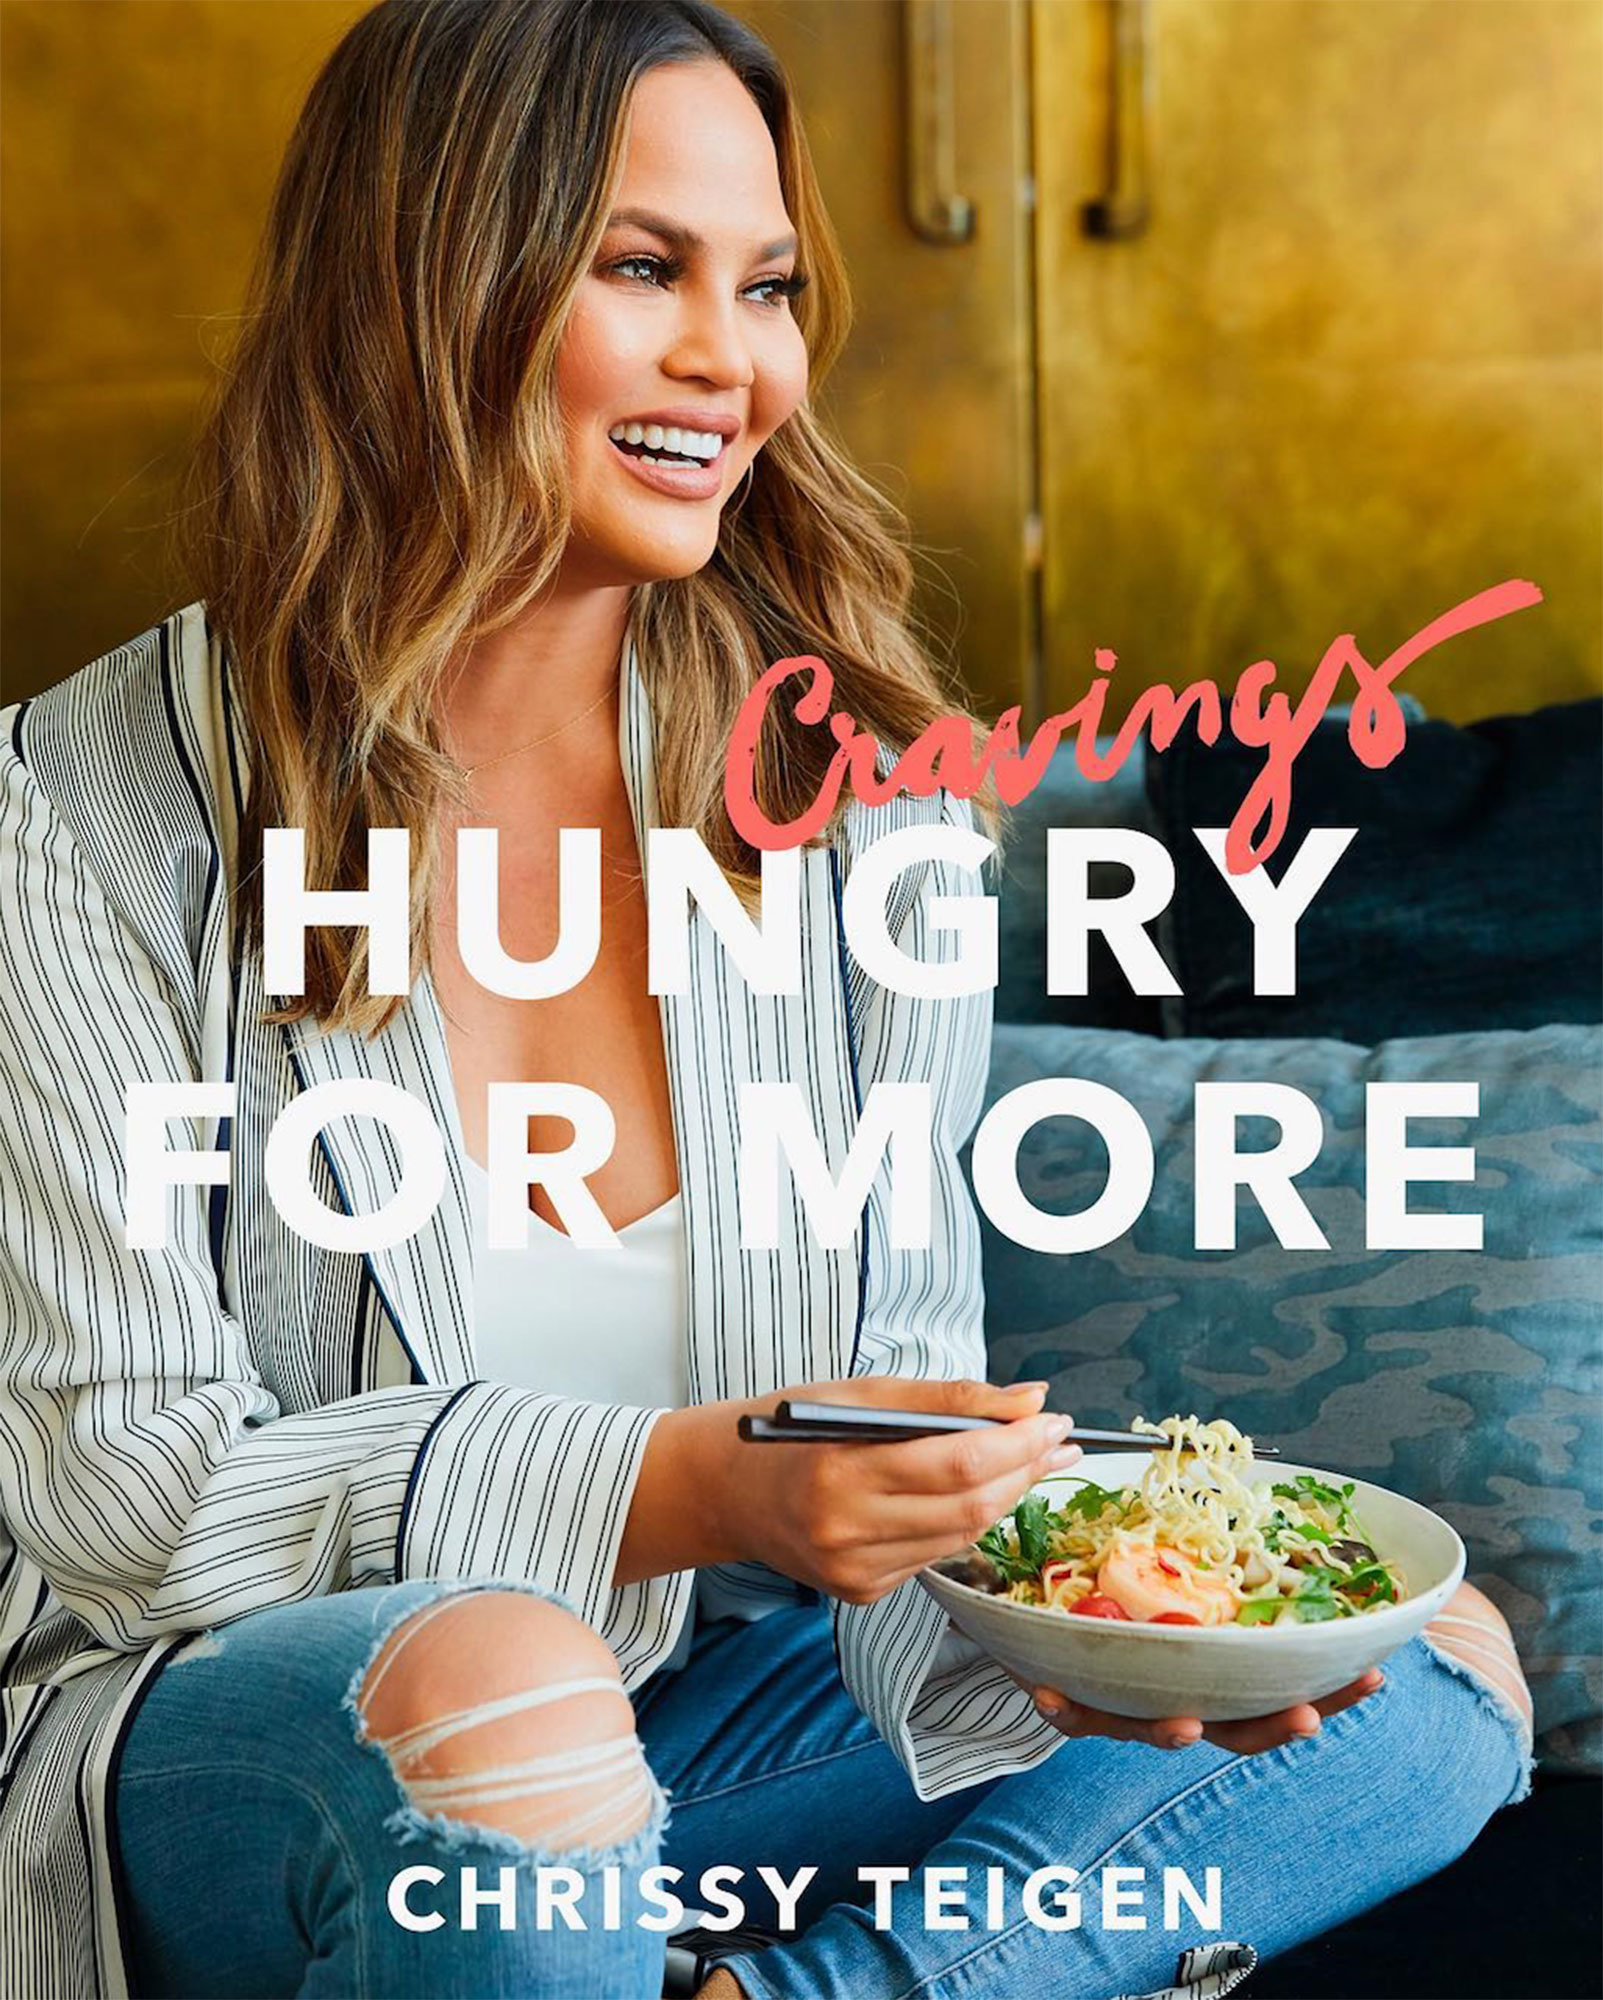 Chrissy Teigen's Second Cookbook Is Now Available for Pre-Order—See the Cover chrissy-teigen10